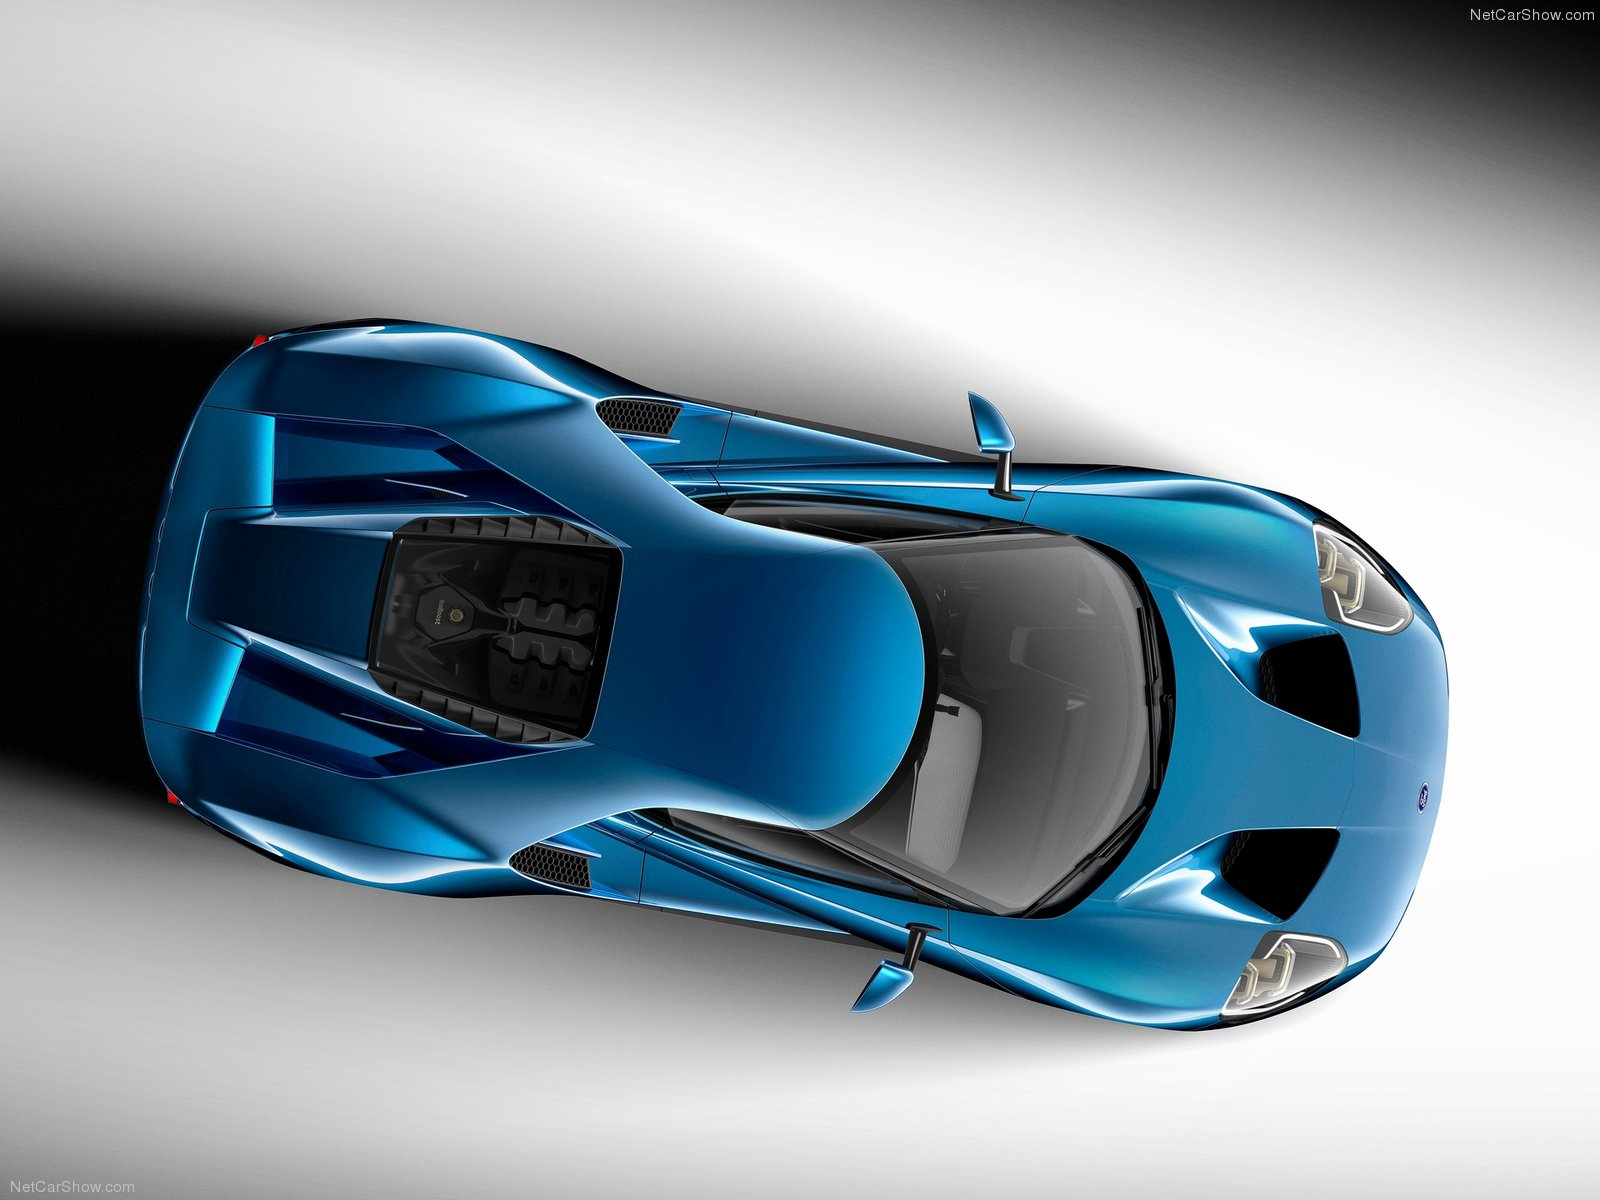 Ford-GT_2017_1600x1200_wallpaper_1a